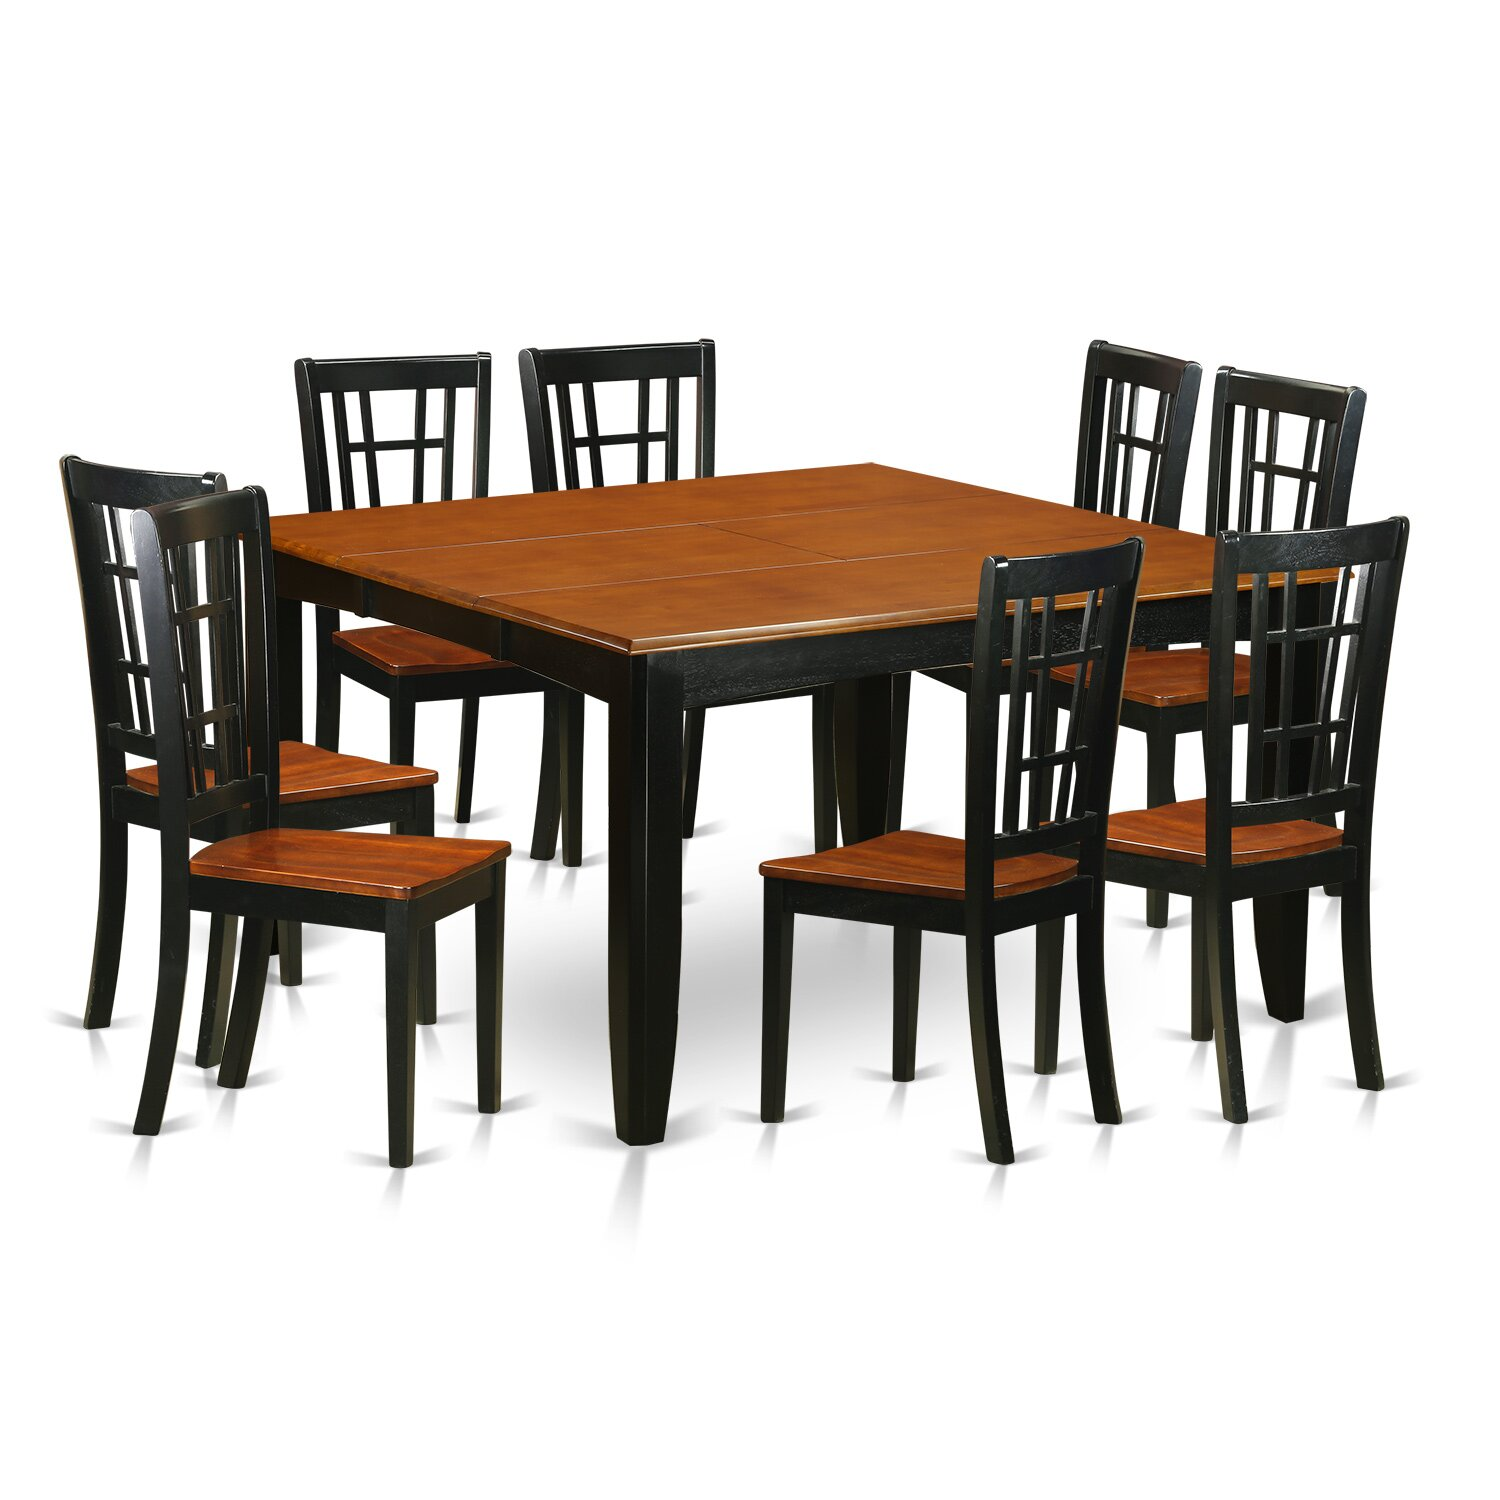 East west parfait 9 piece dining set wayfair for Seating room furniture